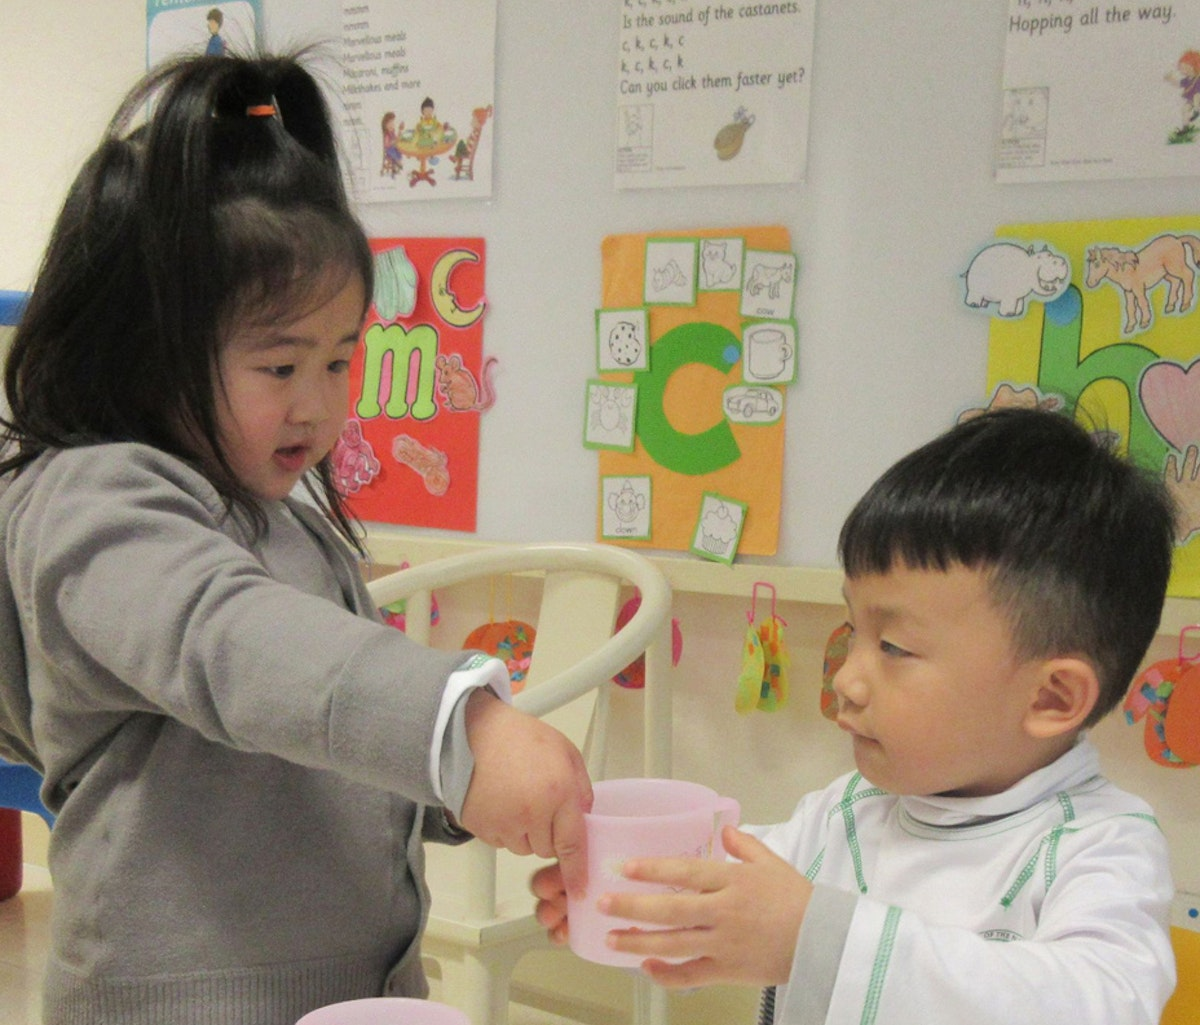 Service is integrated into the School of the Nations' curriculum. Here, a kindergarten student offers water to her classmate as part of a lesson.